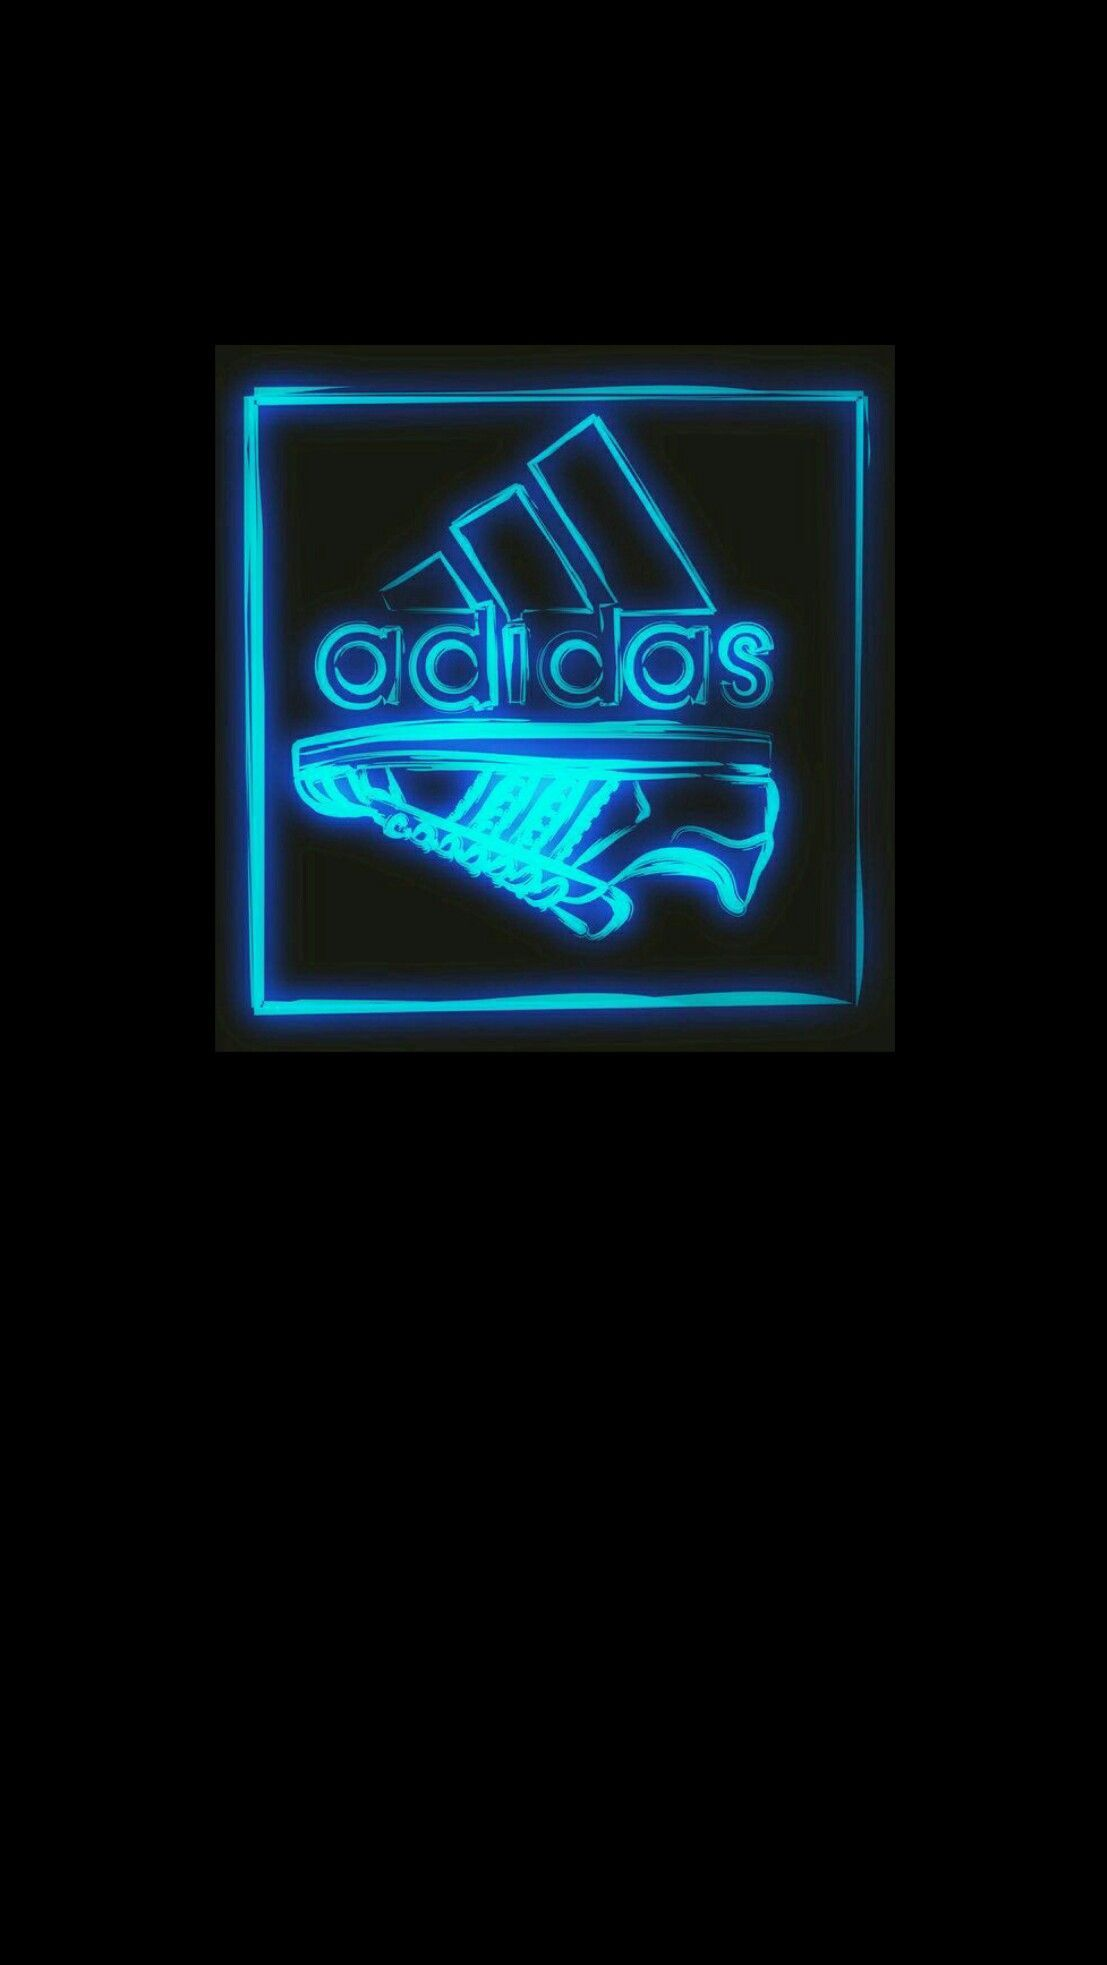 1107x1965 adidas #camouflage #wallpaper #iPhone #android | wallpaper ...